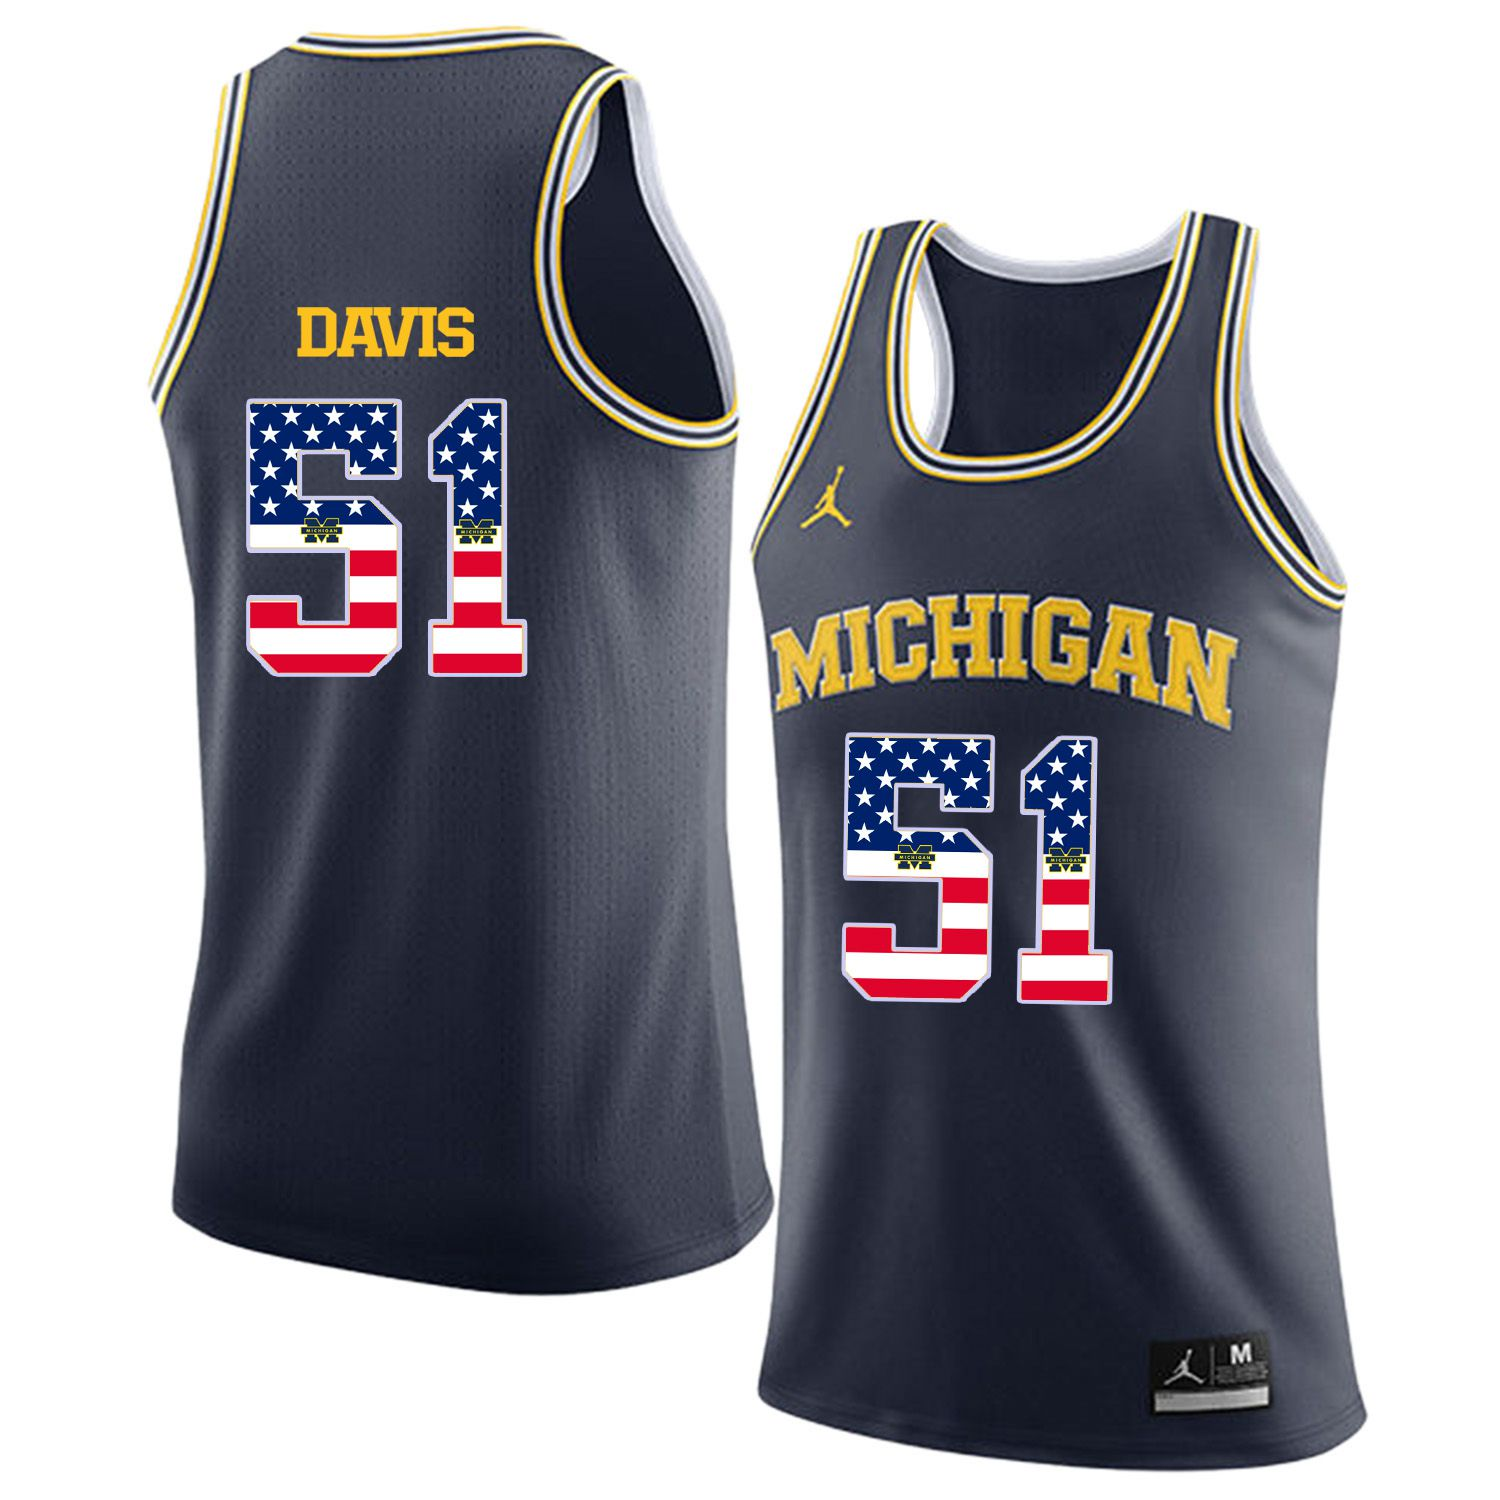 Men Jordan University of Michigan Basketball Navy 51 Davis Flag Customized NCAA Jerseys